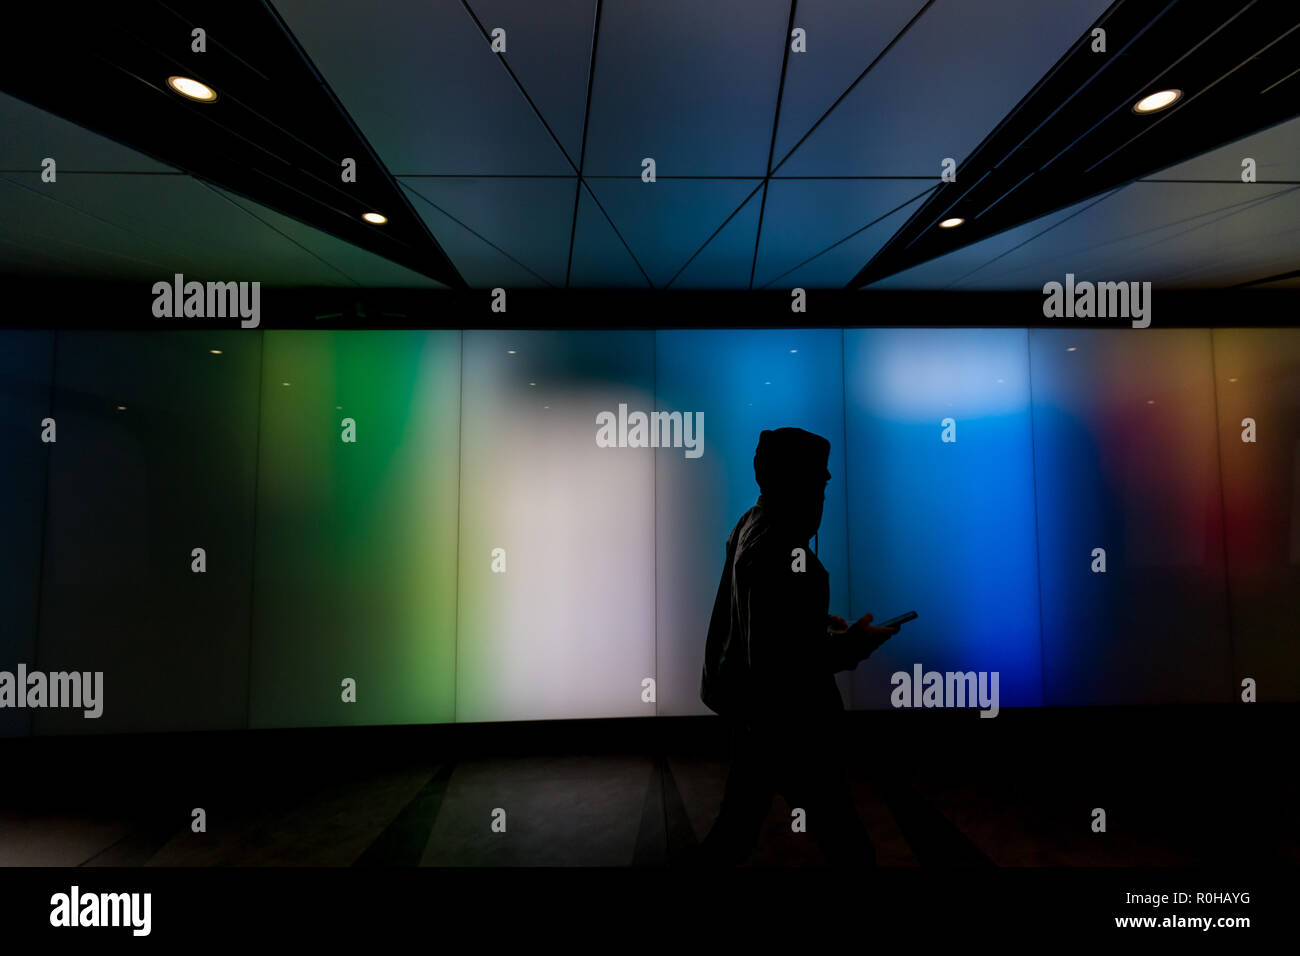 Young man walking using phone in futuristic modern sci-fi moody dark tunnel background in city London lights Stock Photo